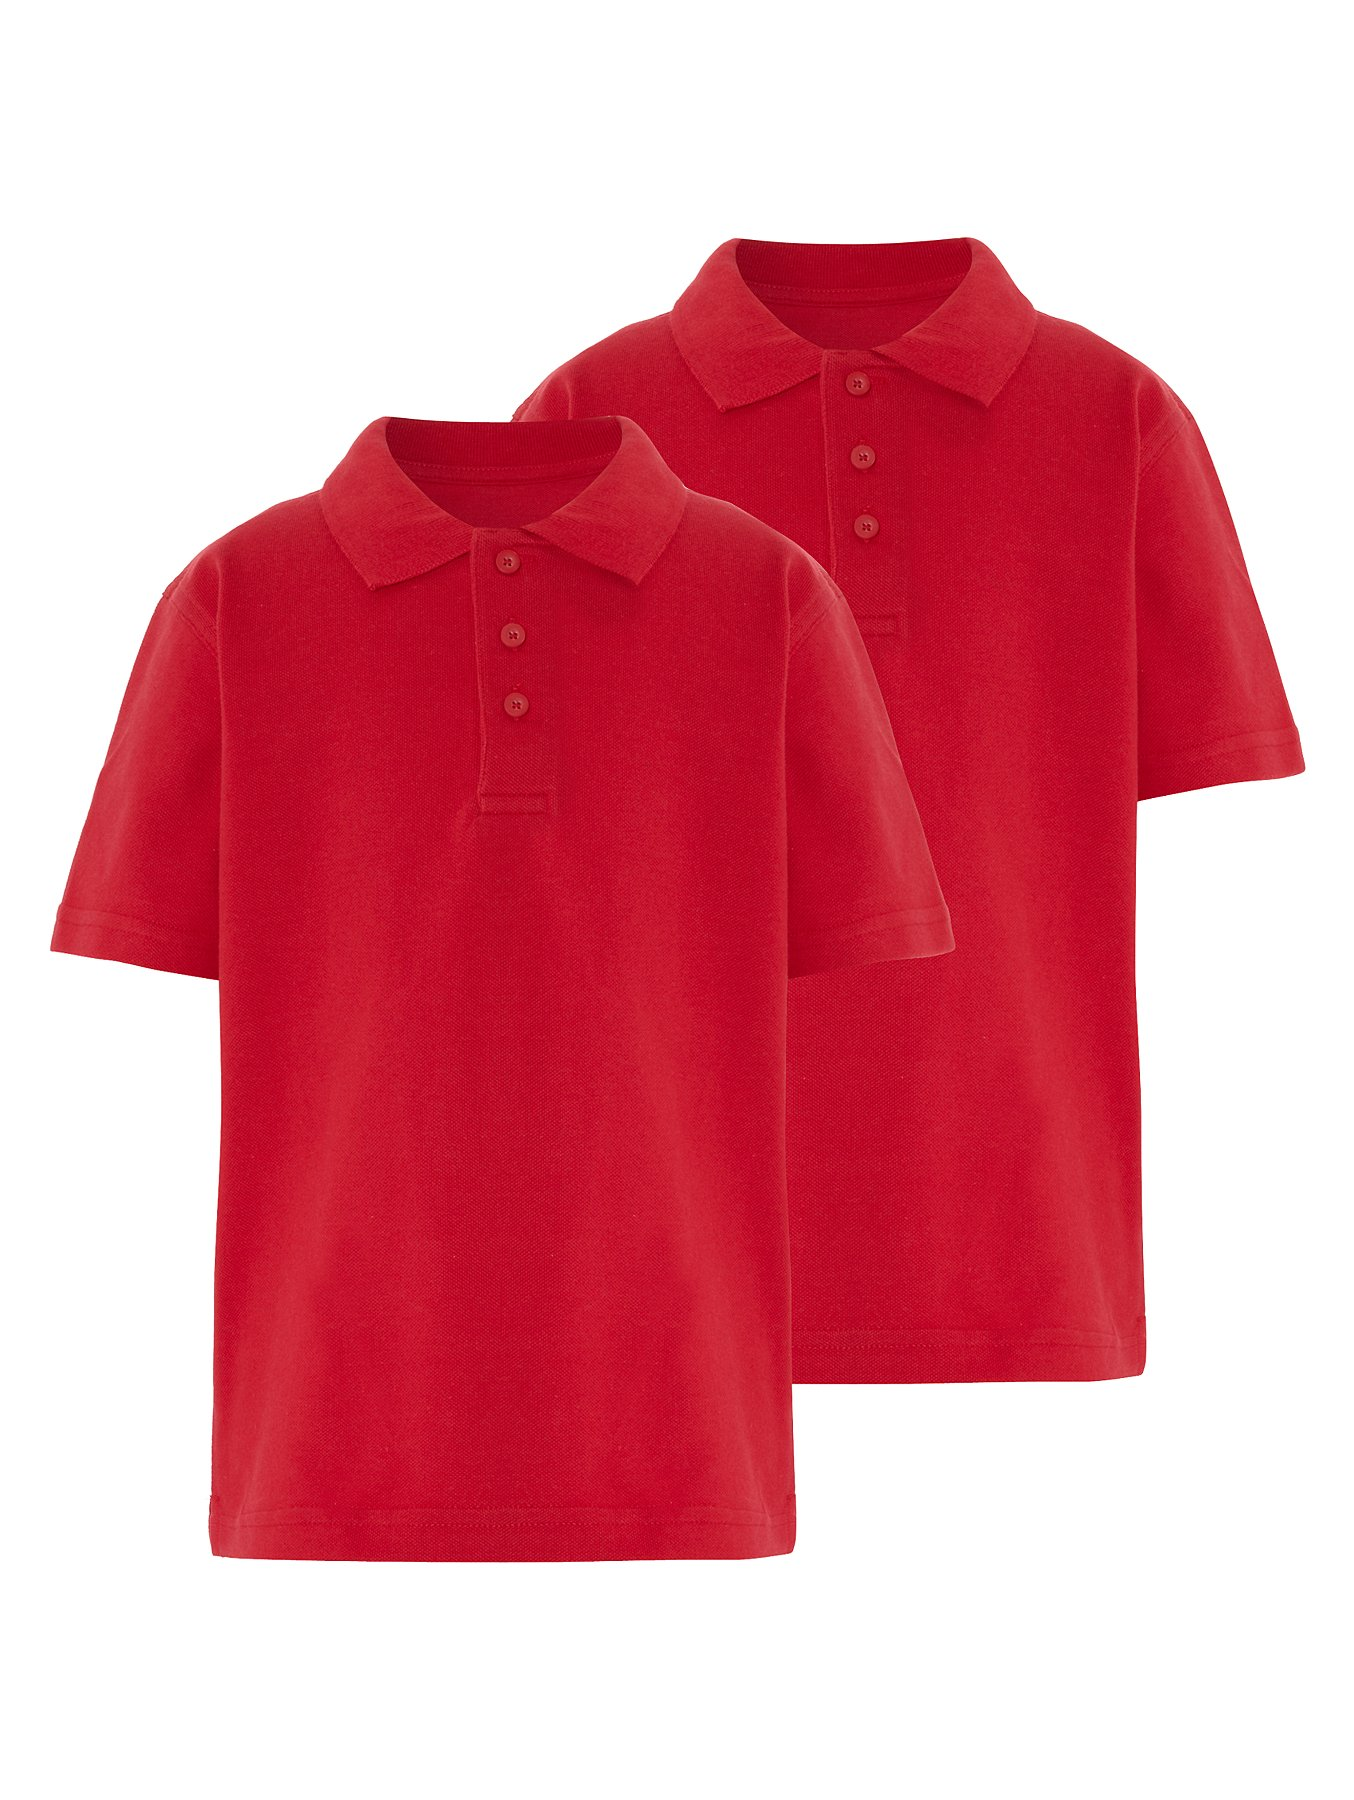 6e330628c53aa School 2 Pack Polo Shirts - Red